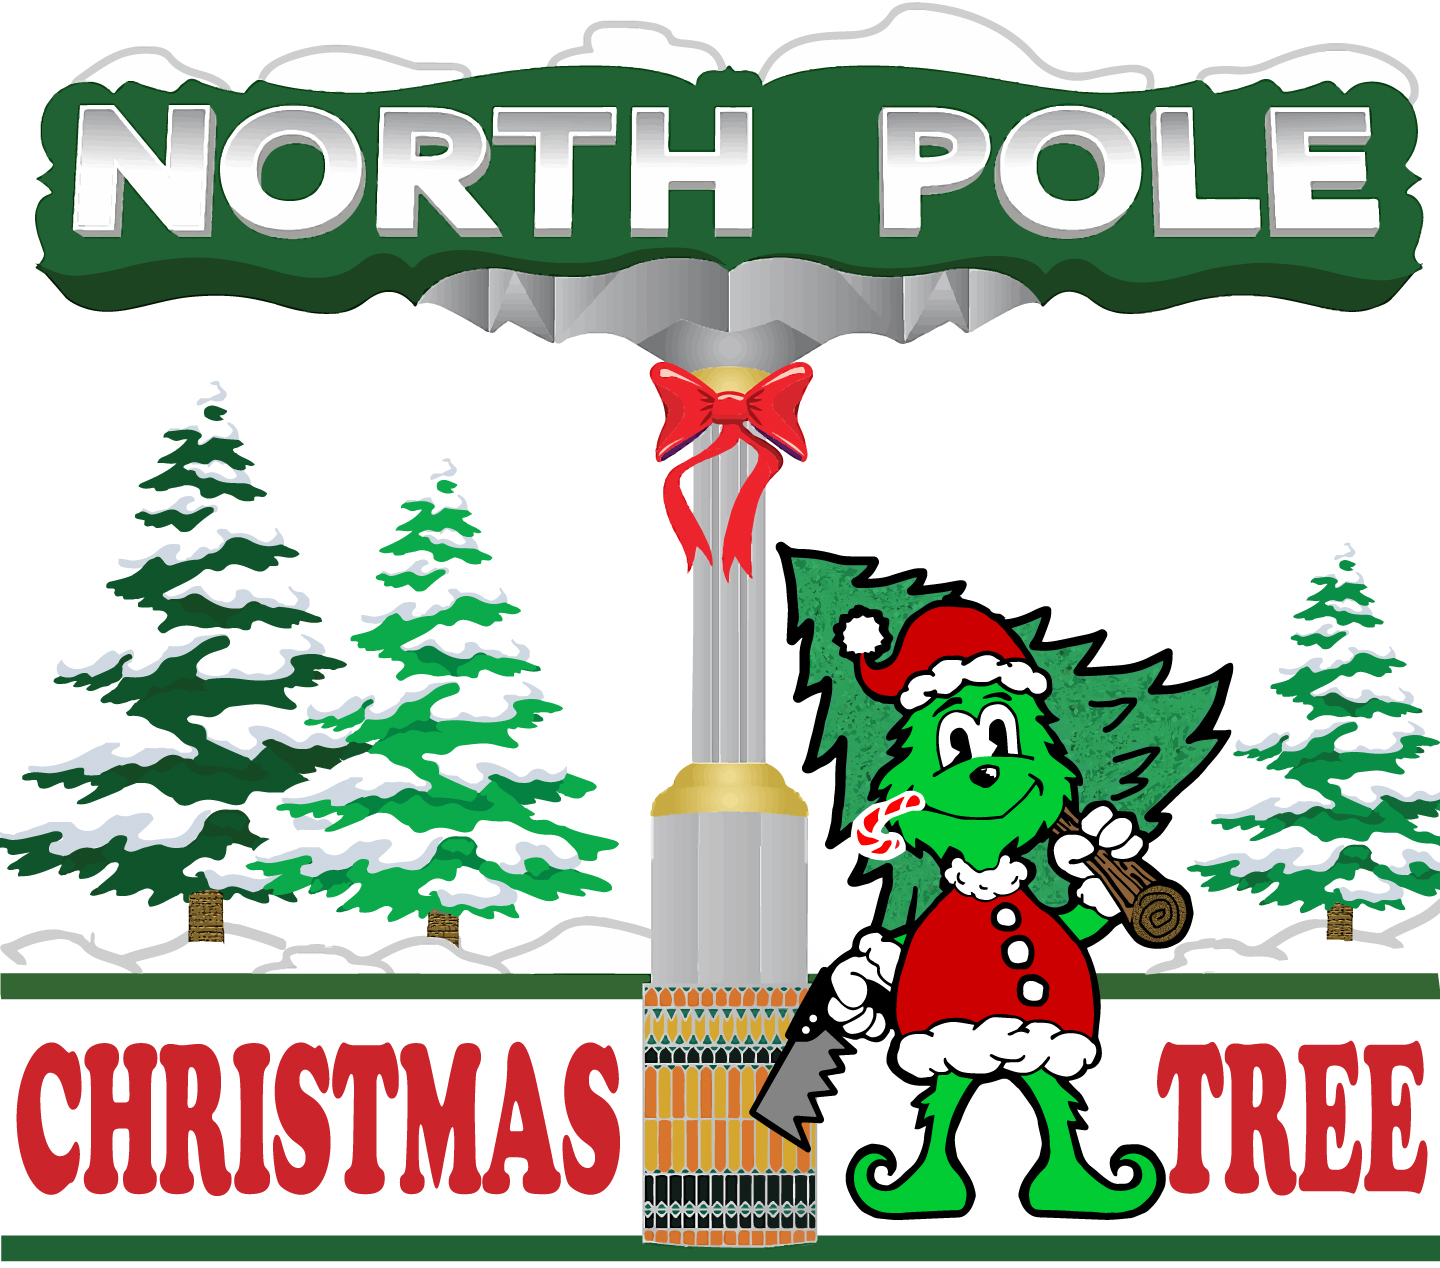 North Pole Christmas Tree